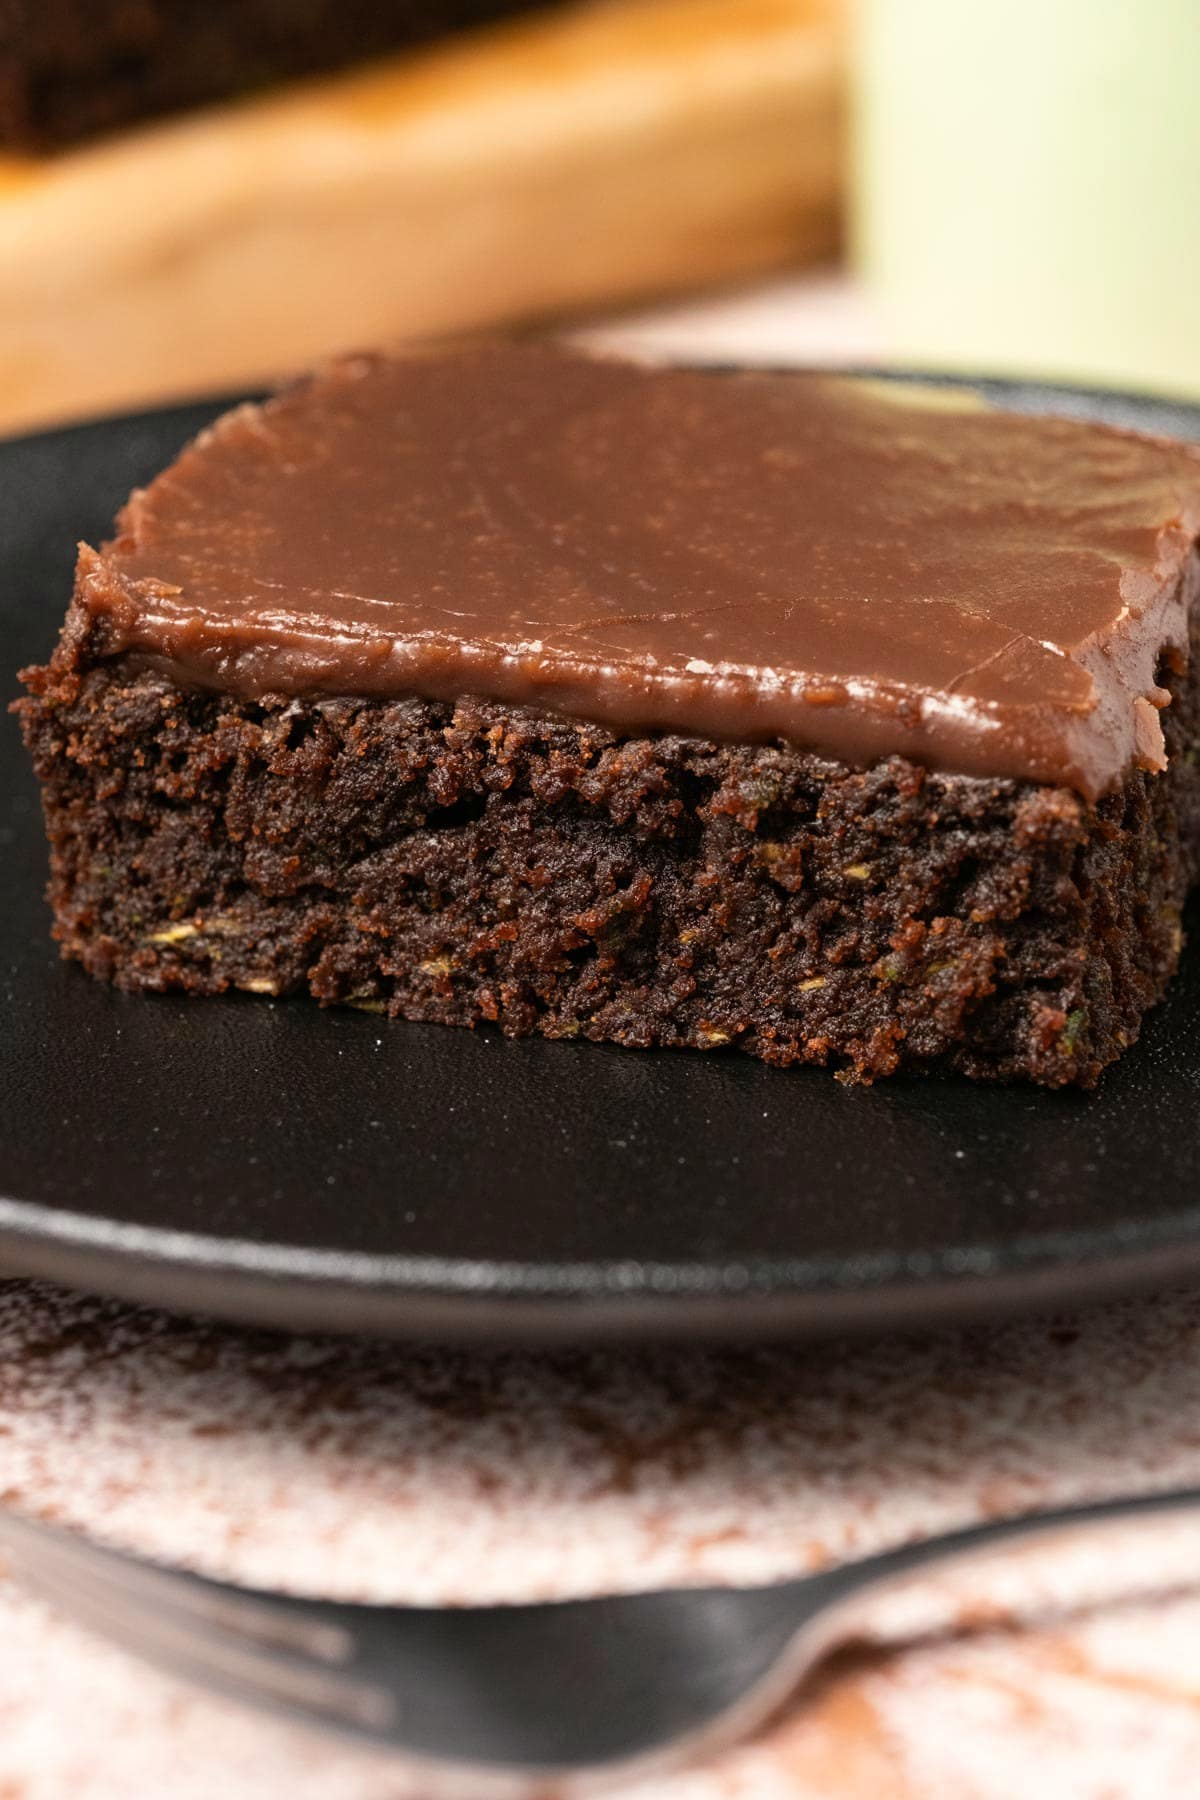 Brownie with chocolate topping on a black plate.